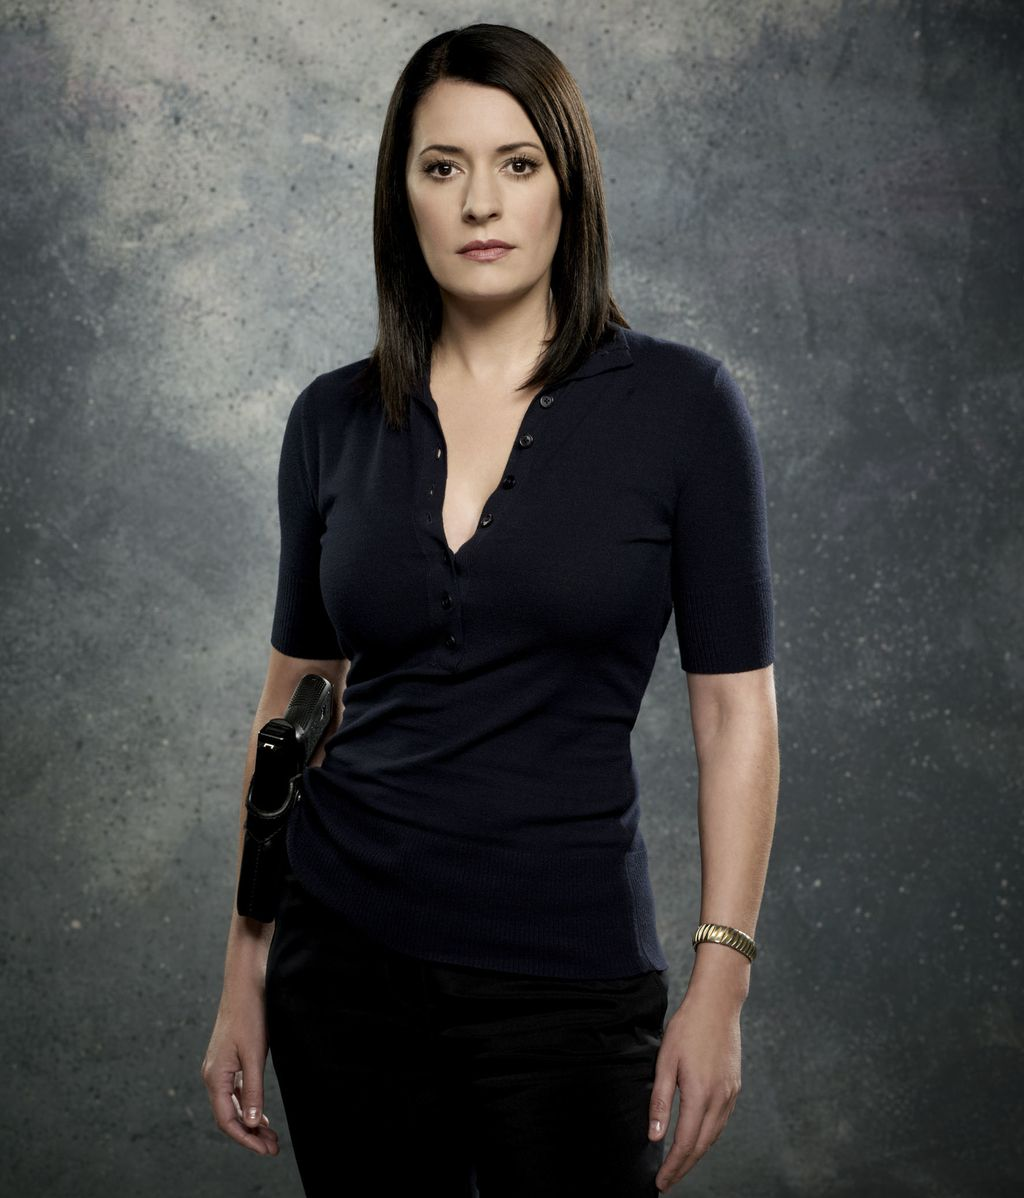 Emily Prentiss (interpretado por Paget Brewster)